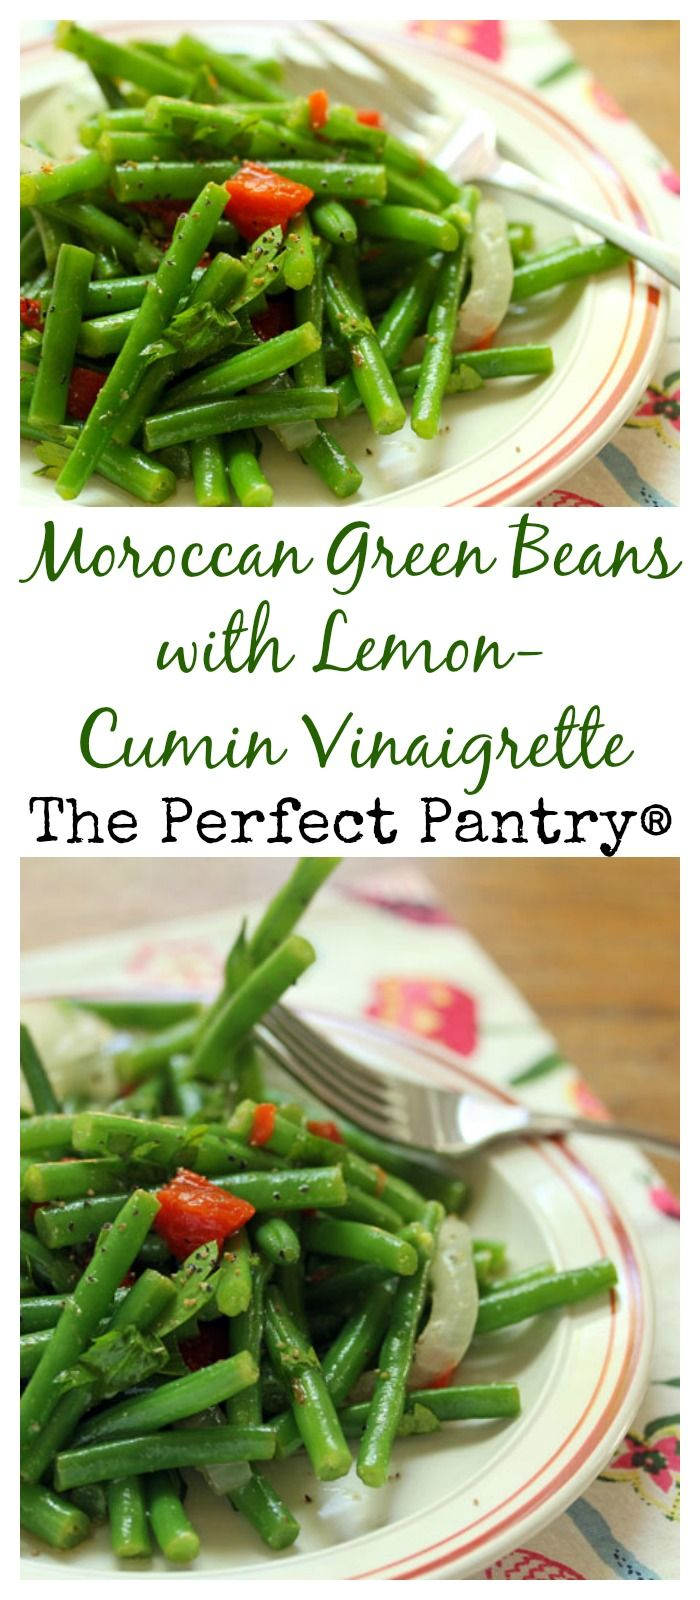 137 best moroccan images on pinterest vegan recipes vegetarian moroccan green beans with a lemon cumin dressing brighten up your holiday table forumfinder Gallery